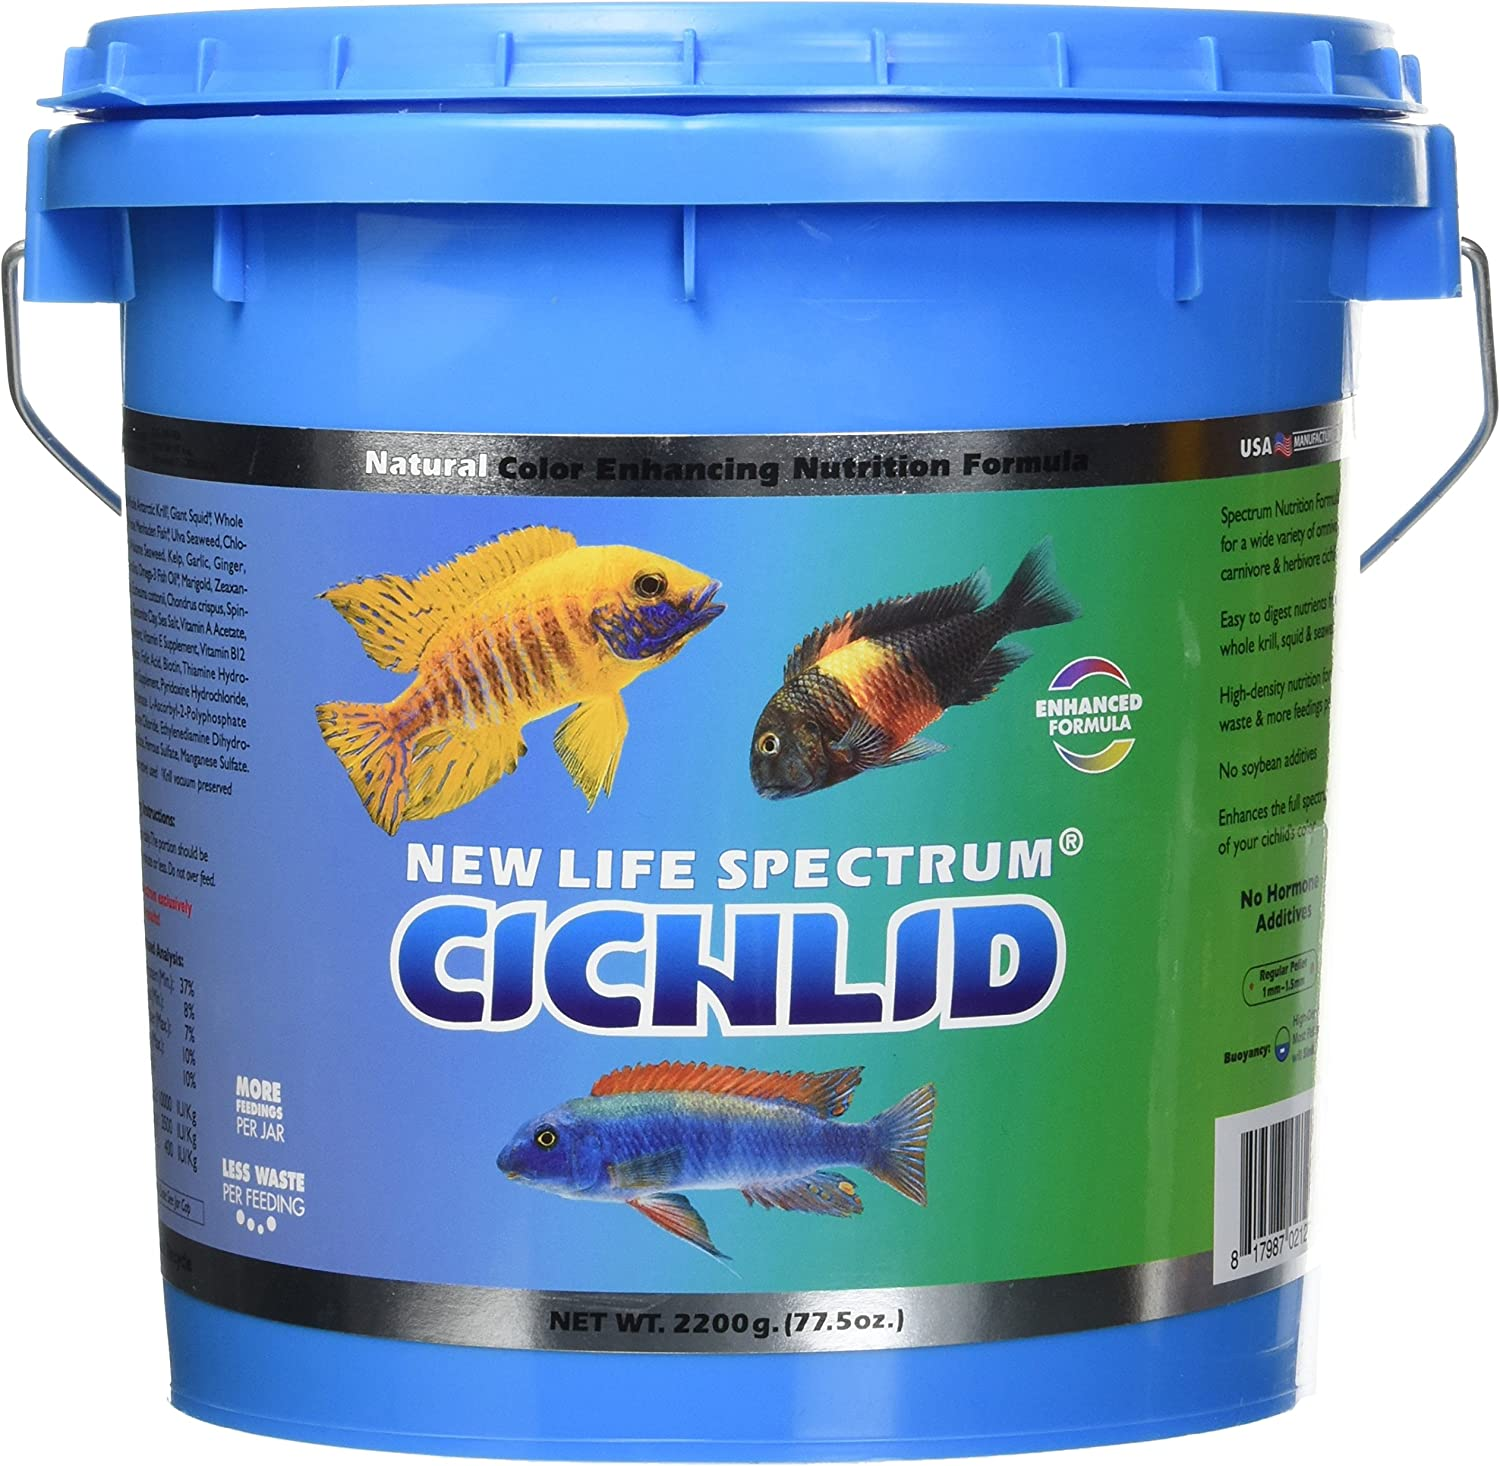 New Life Spectrum Naturox Series Cichlid Formula Supplement, 2200g